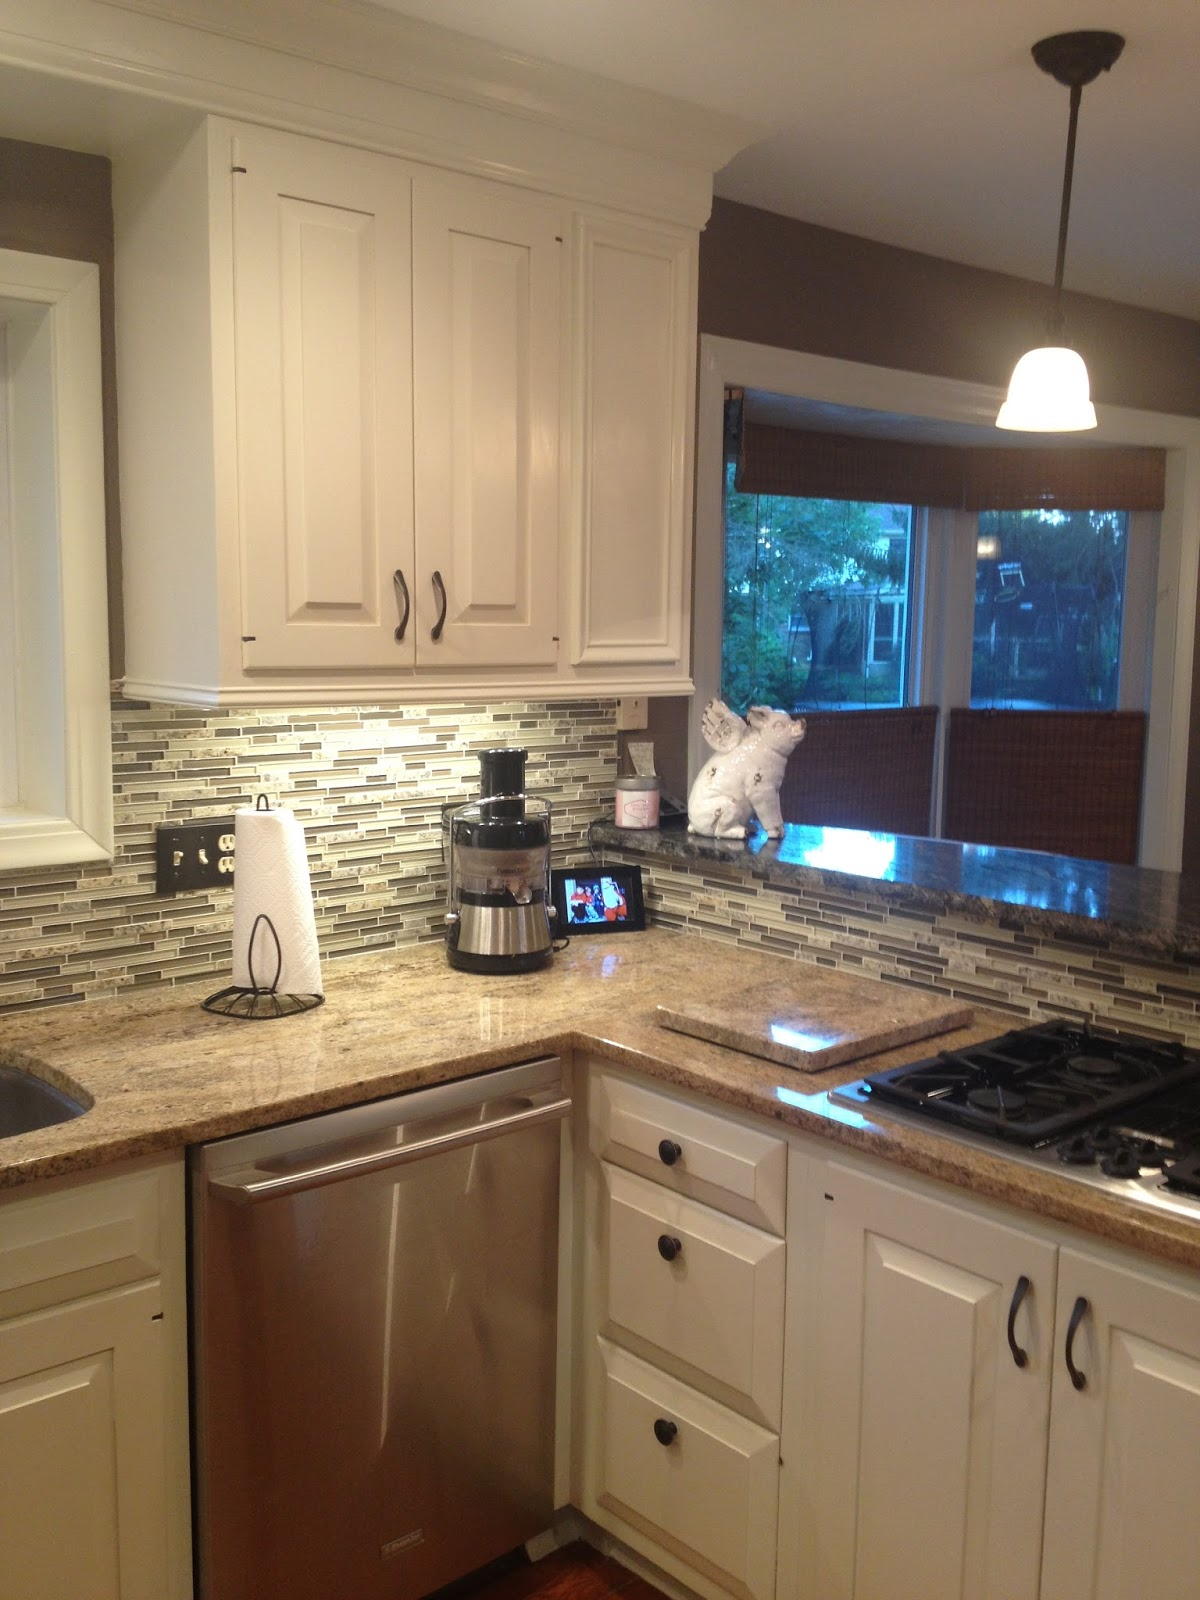 Kitchen Renovations On A Budget Unfinished Cabinets Online Four Seasons Style The New Remodel